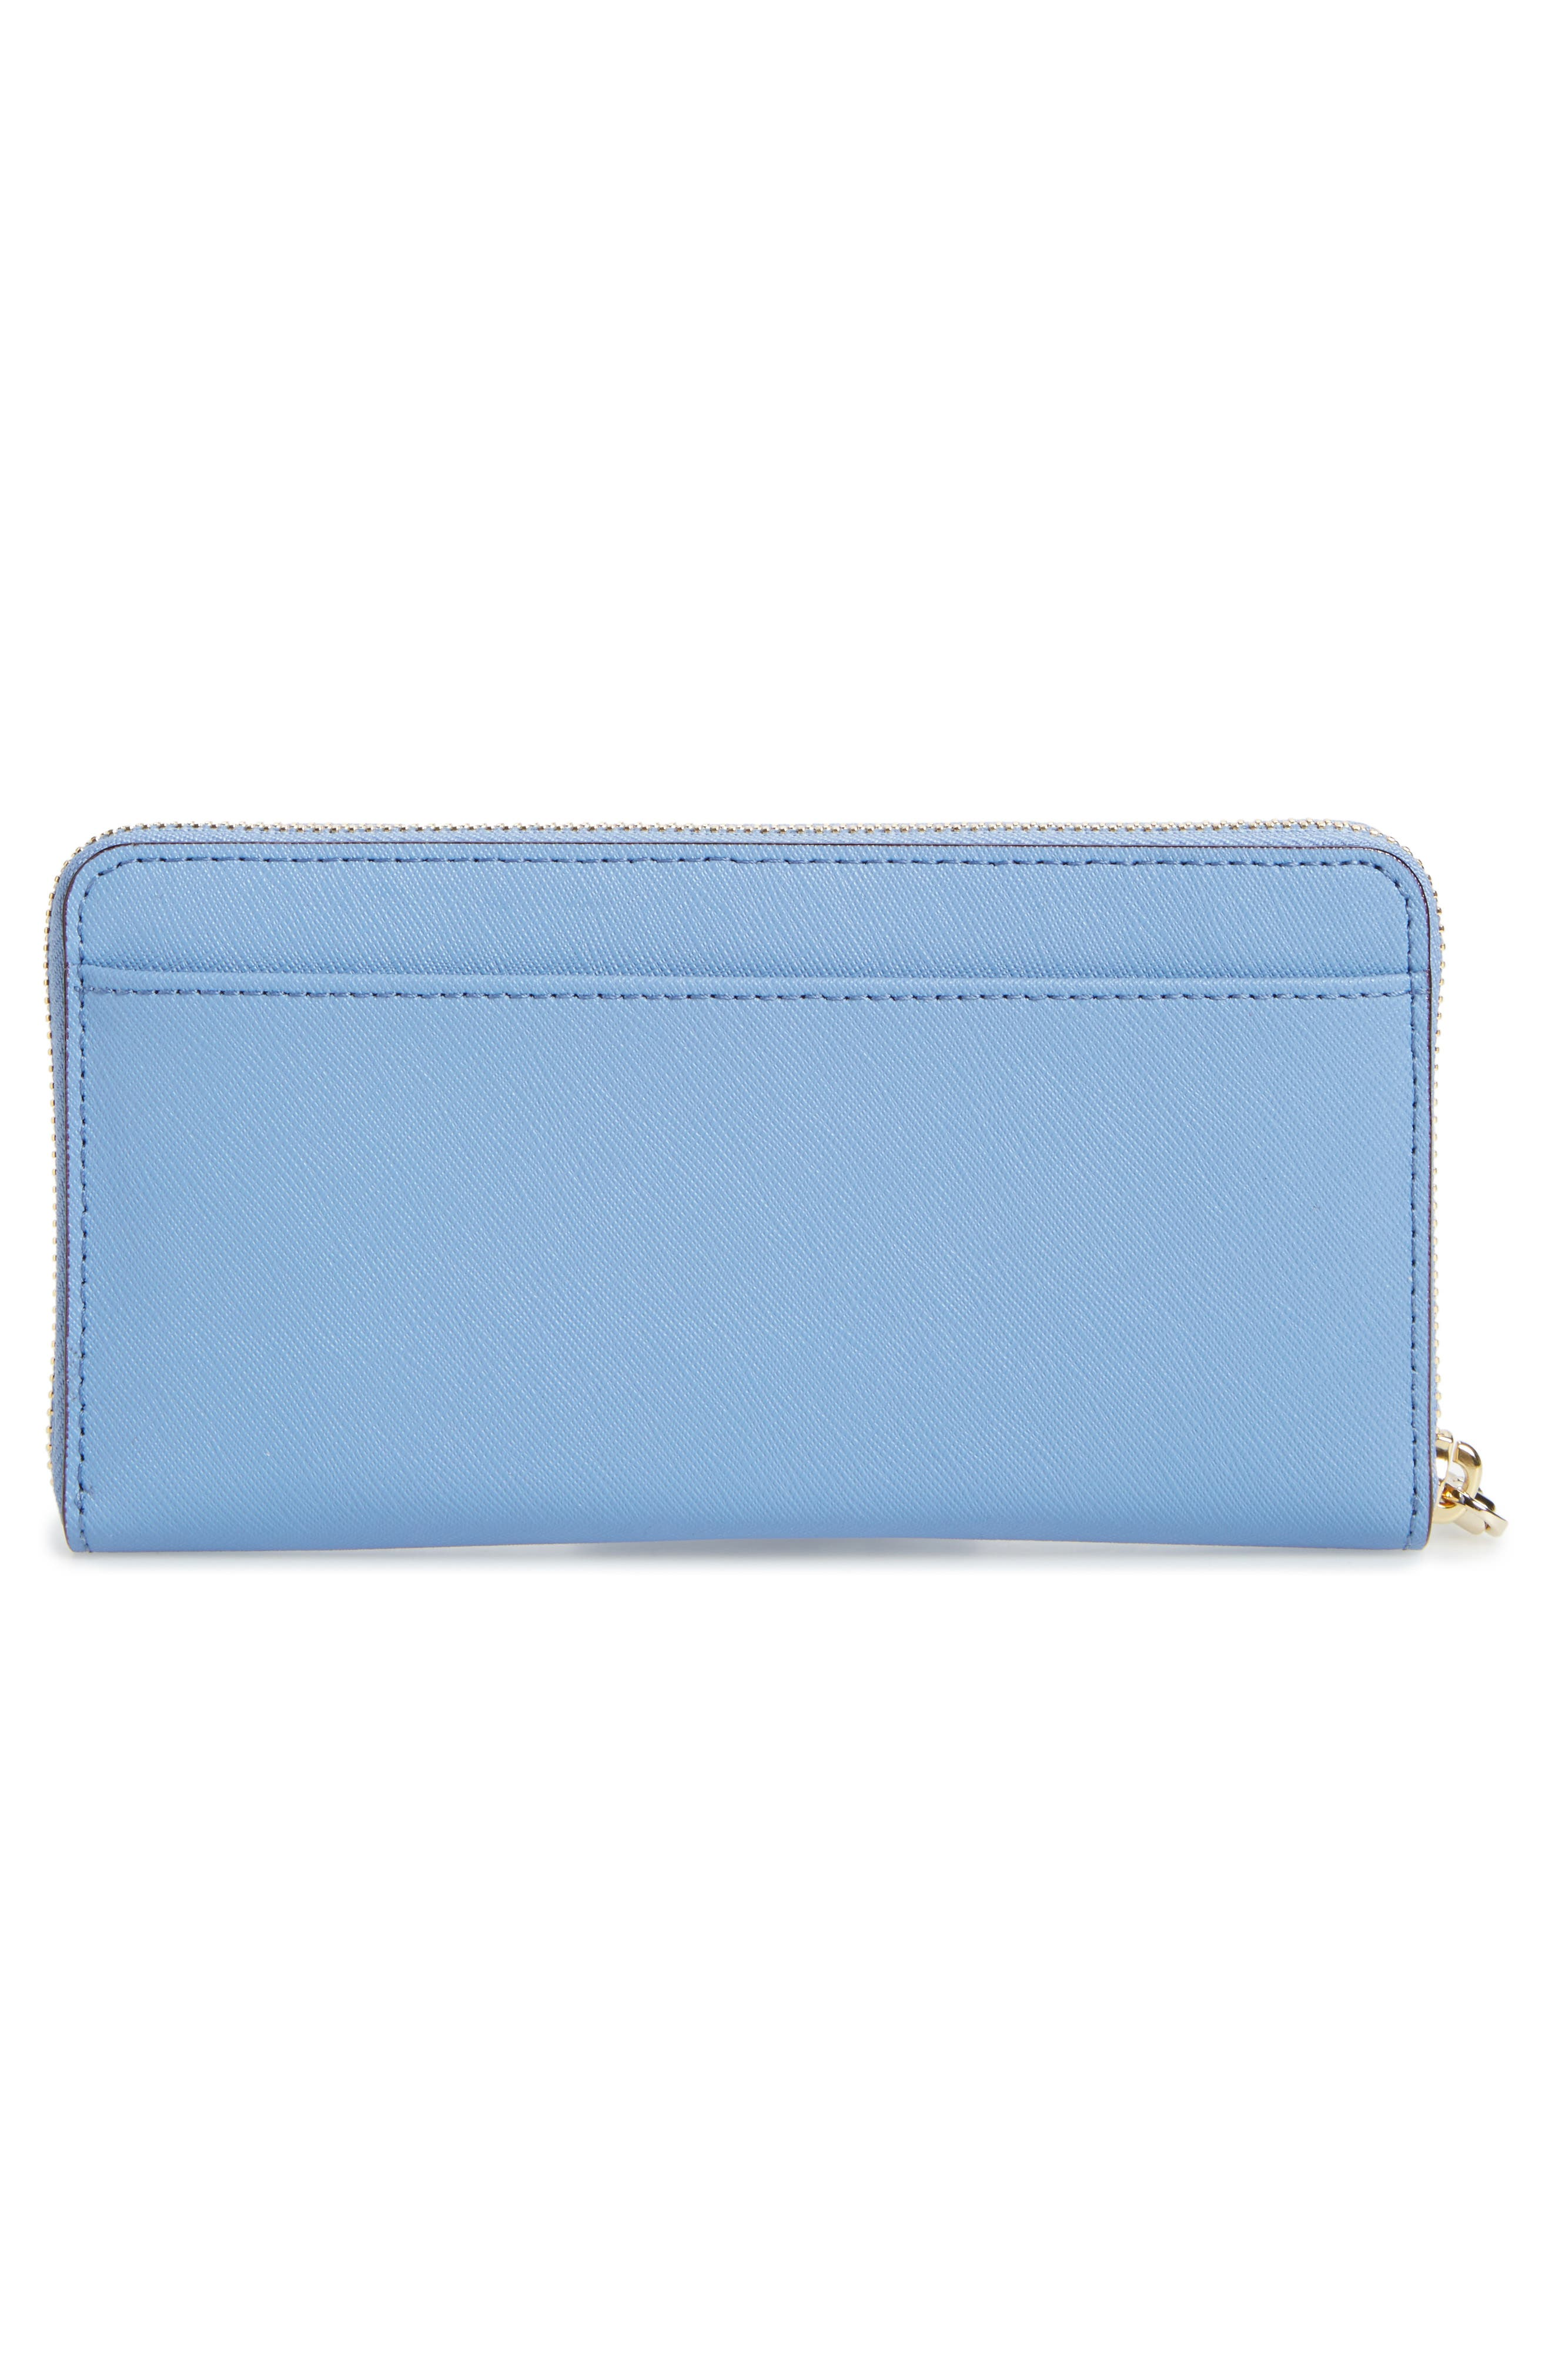 'cameron street - lacey' leather wallet,                             Alternate thumbnail 74, color,